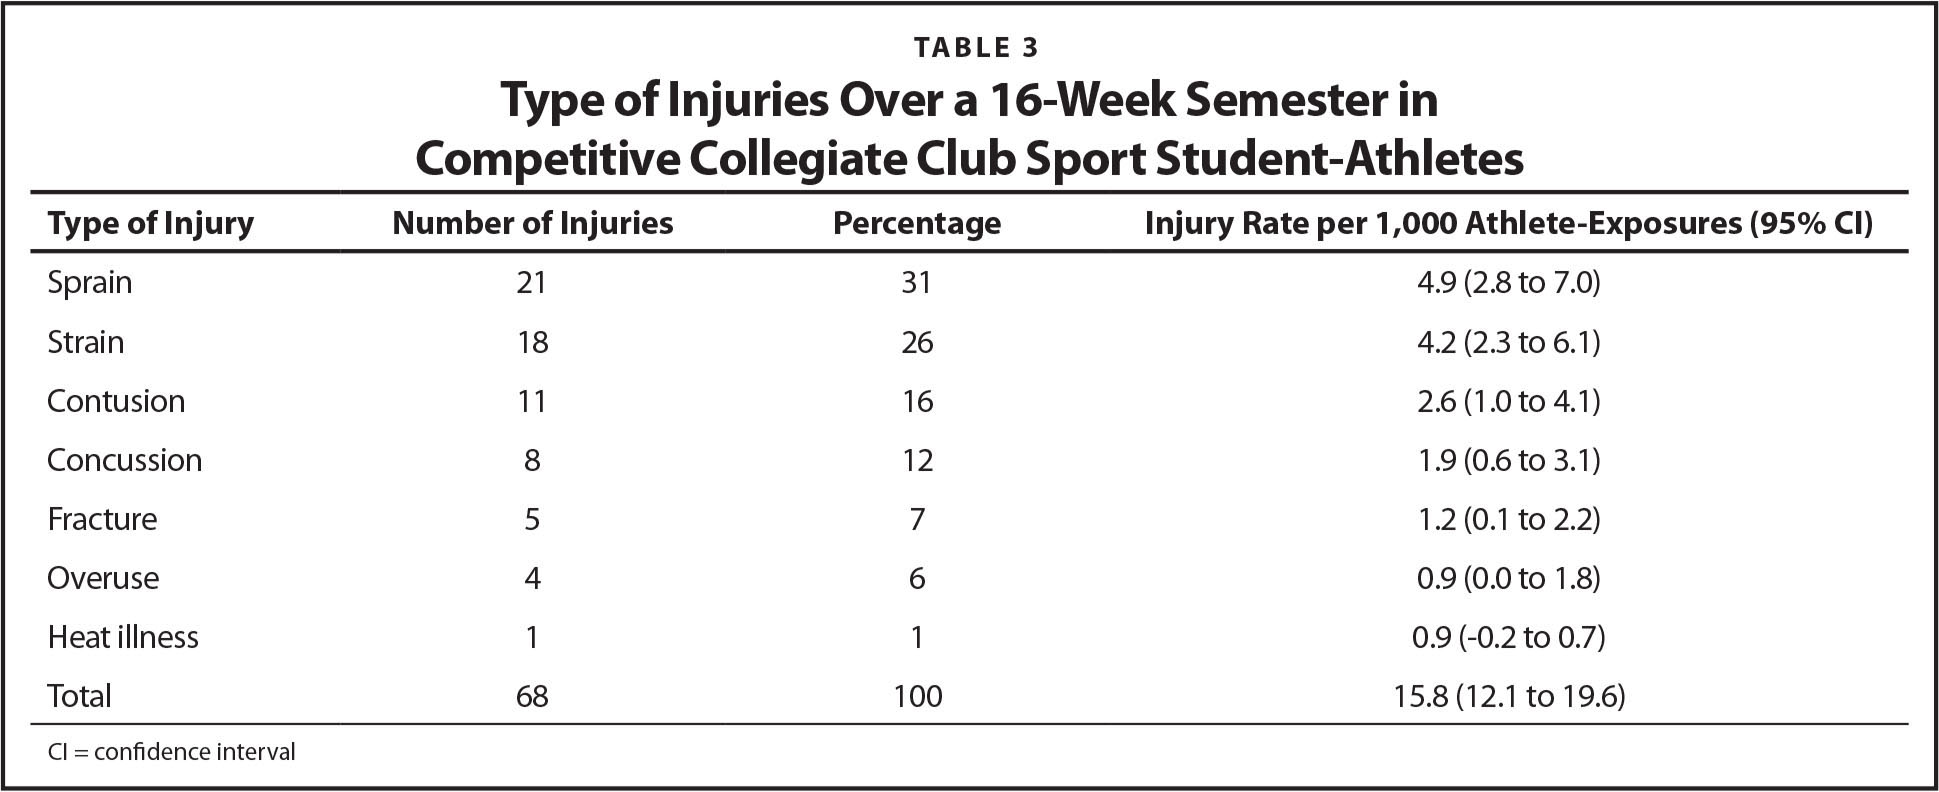 Type of Injuries Over a 16-Week Semester in Competitive Collegiate Club Sport Student-Athletes